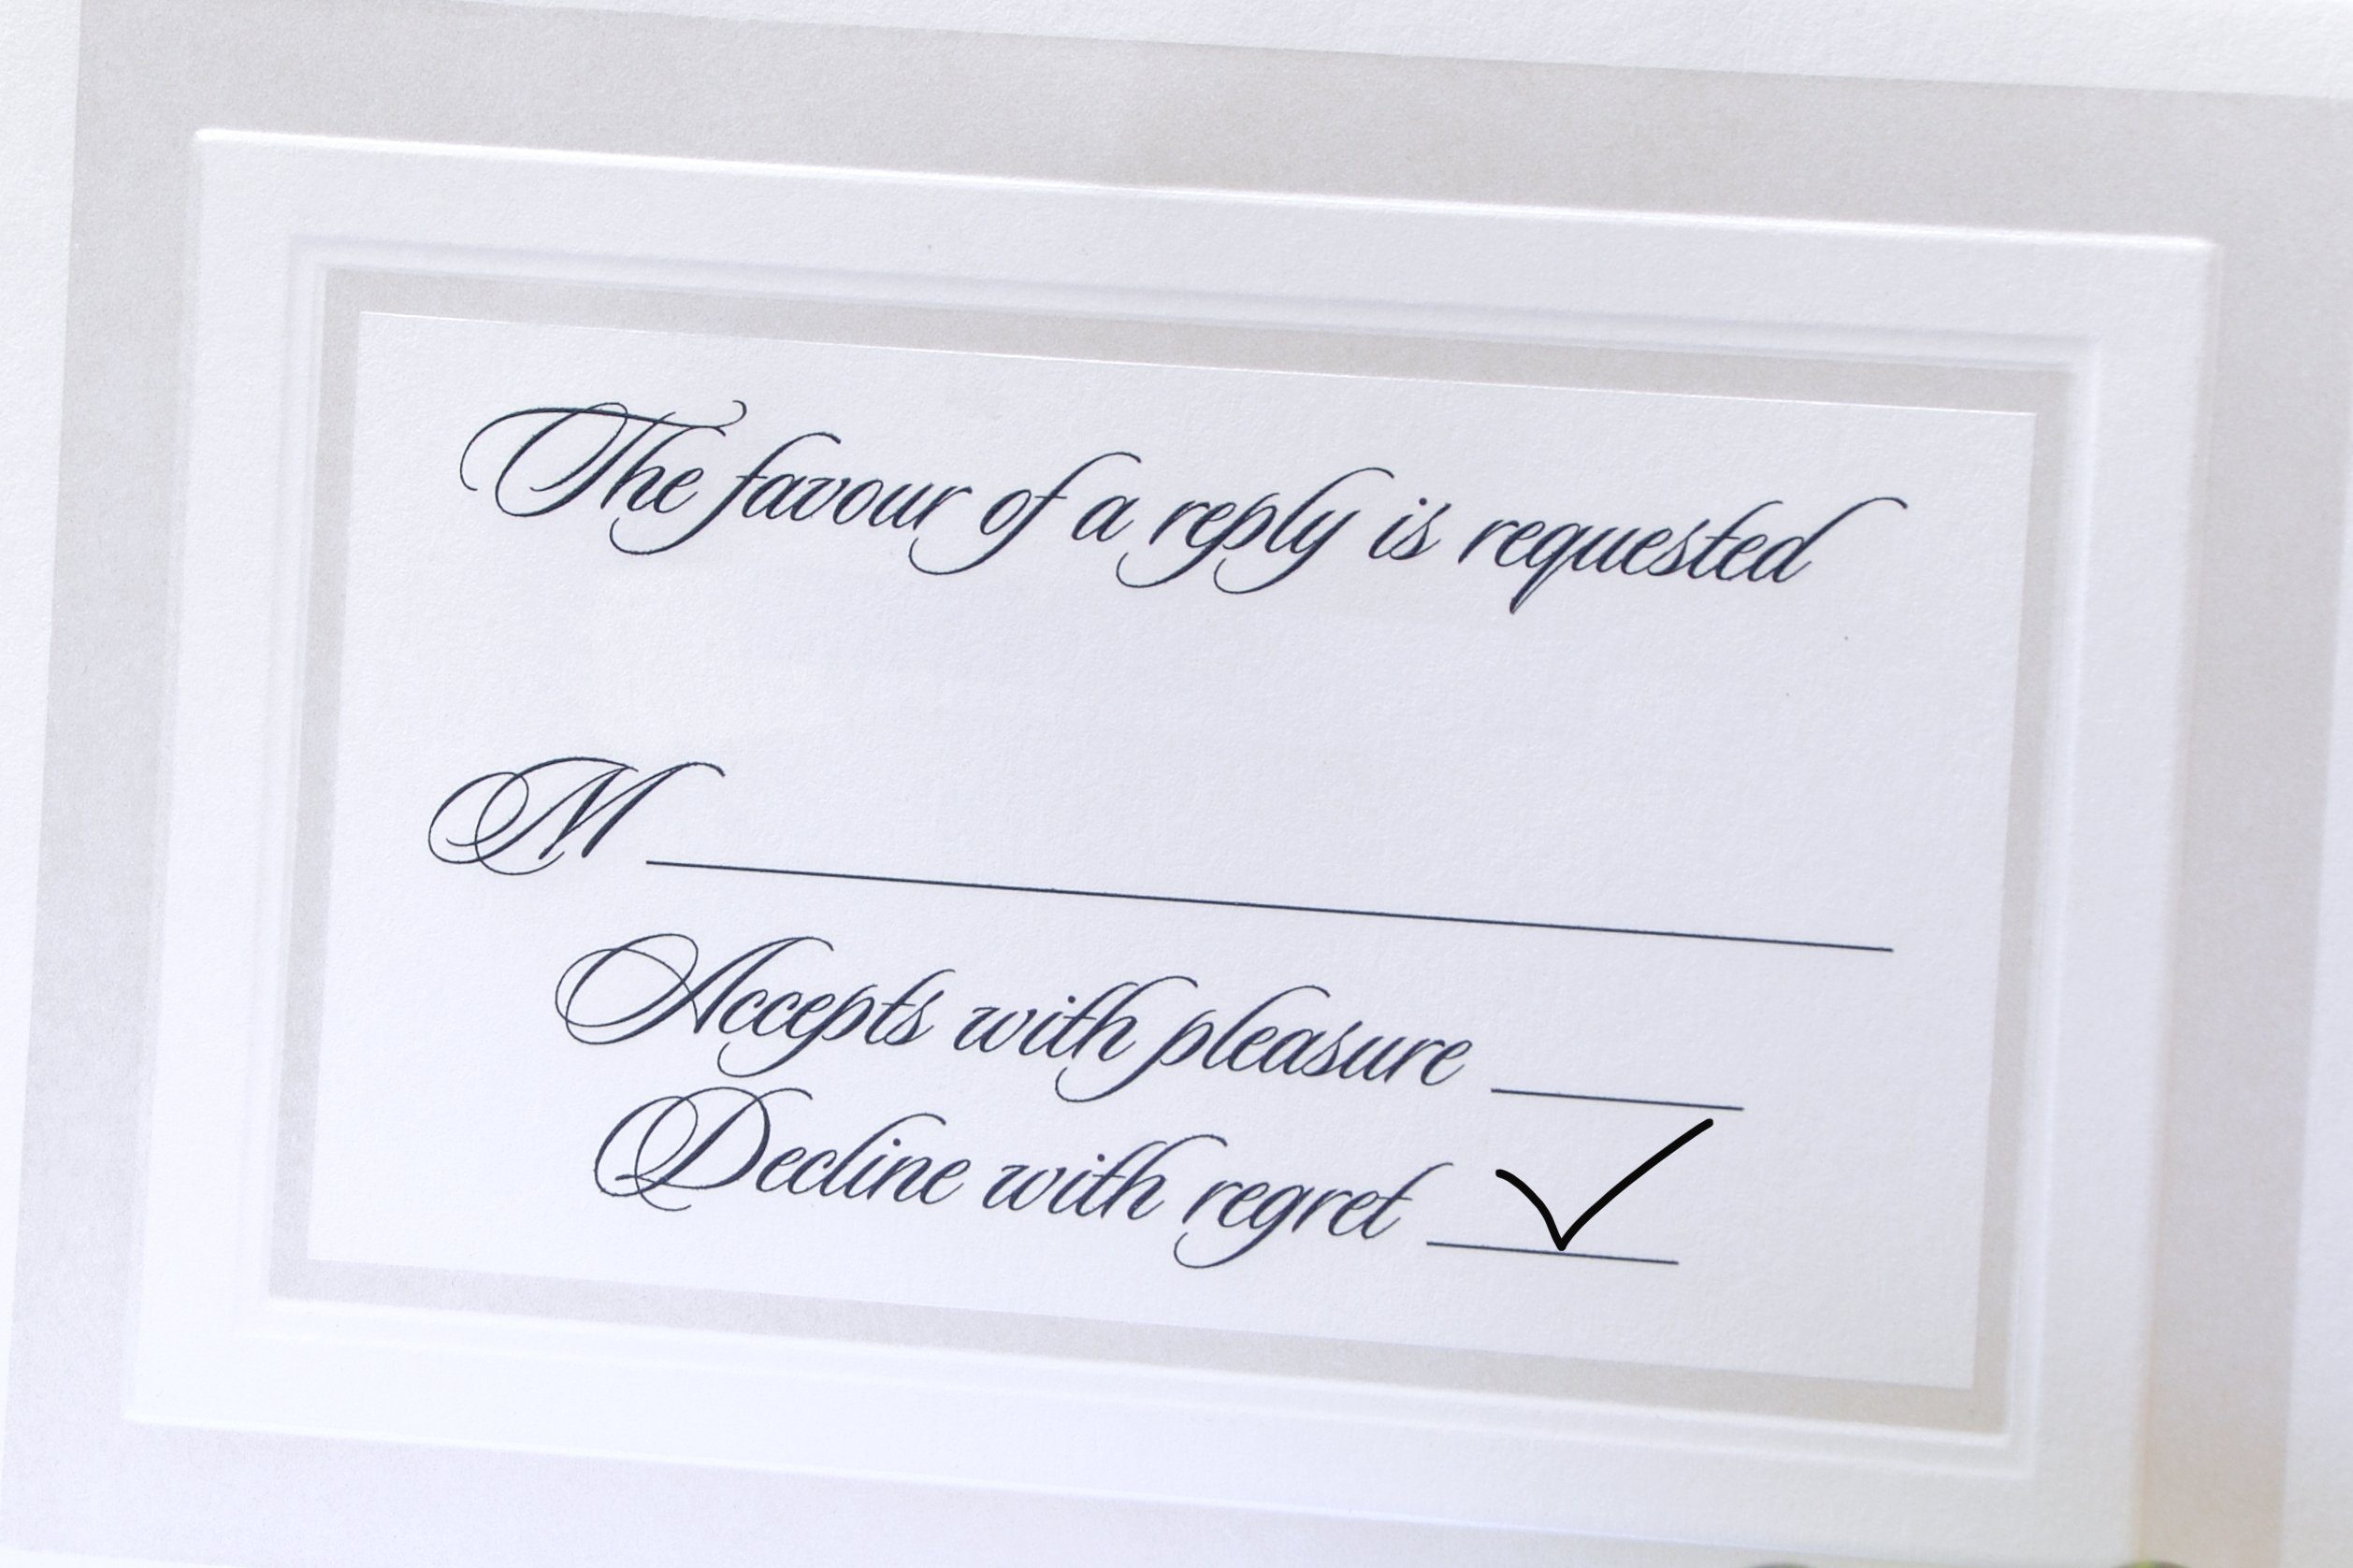 RSVP letter with a calligraphy pen and ink.; Shutterstock ID 65390005